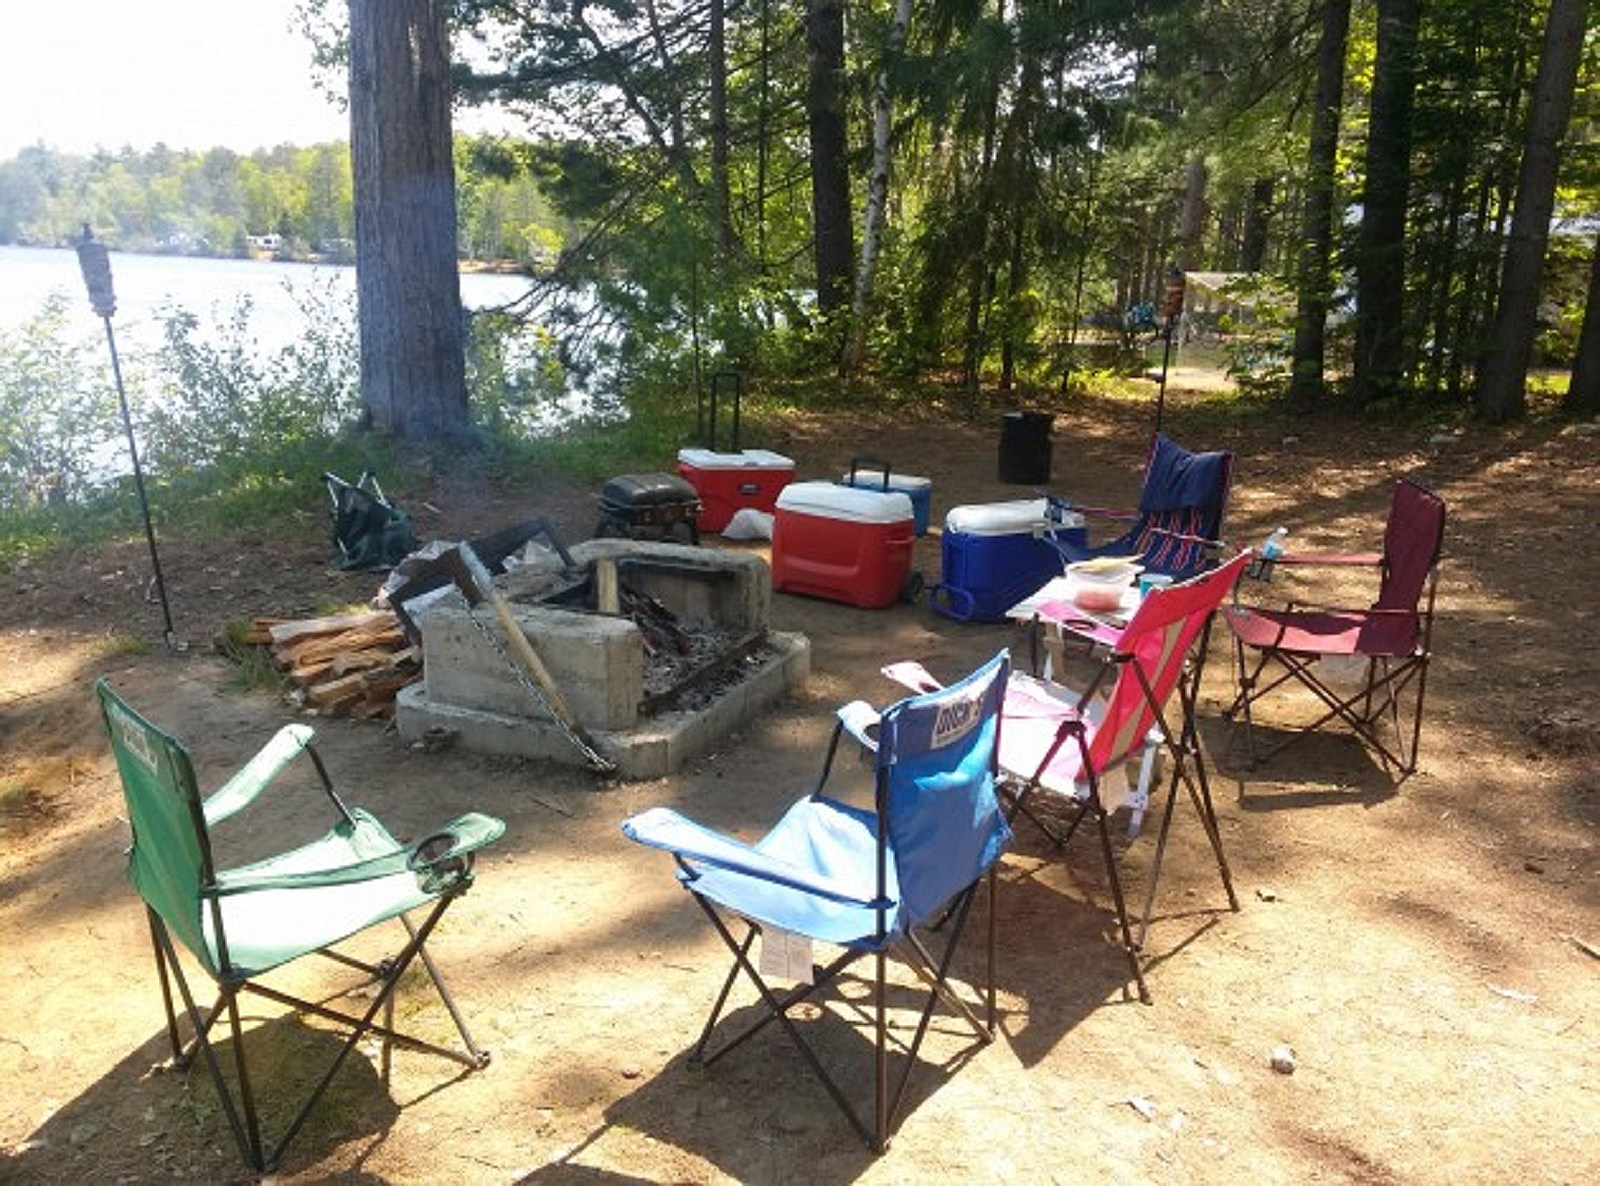 Chairs Around a Campfire at Eighth Lake in the Adirondacks